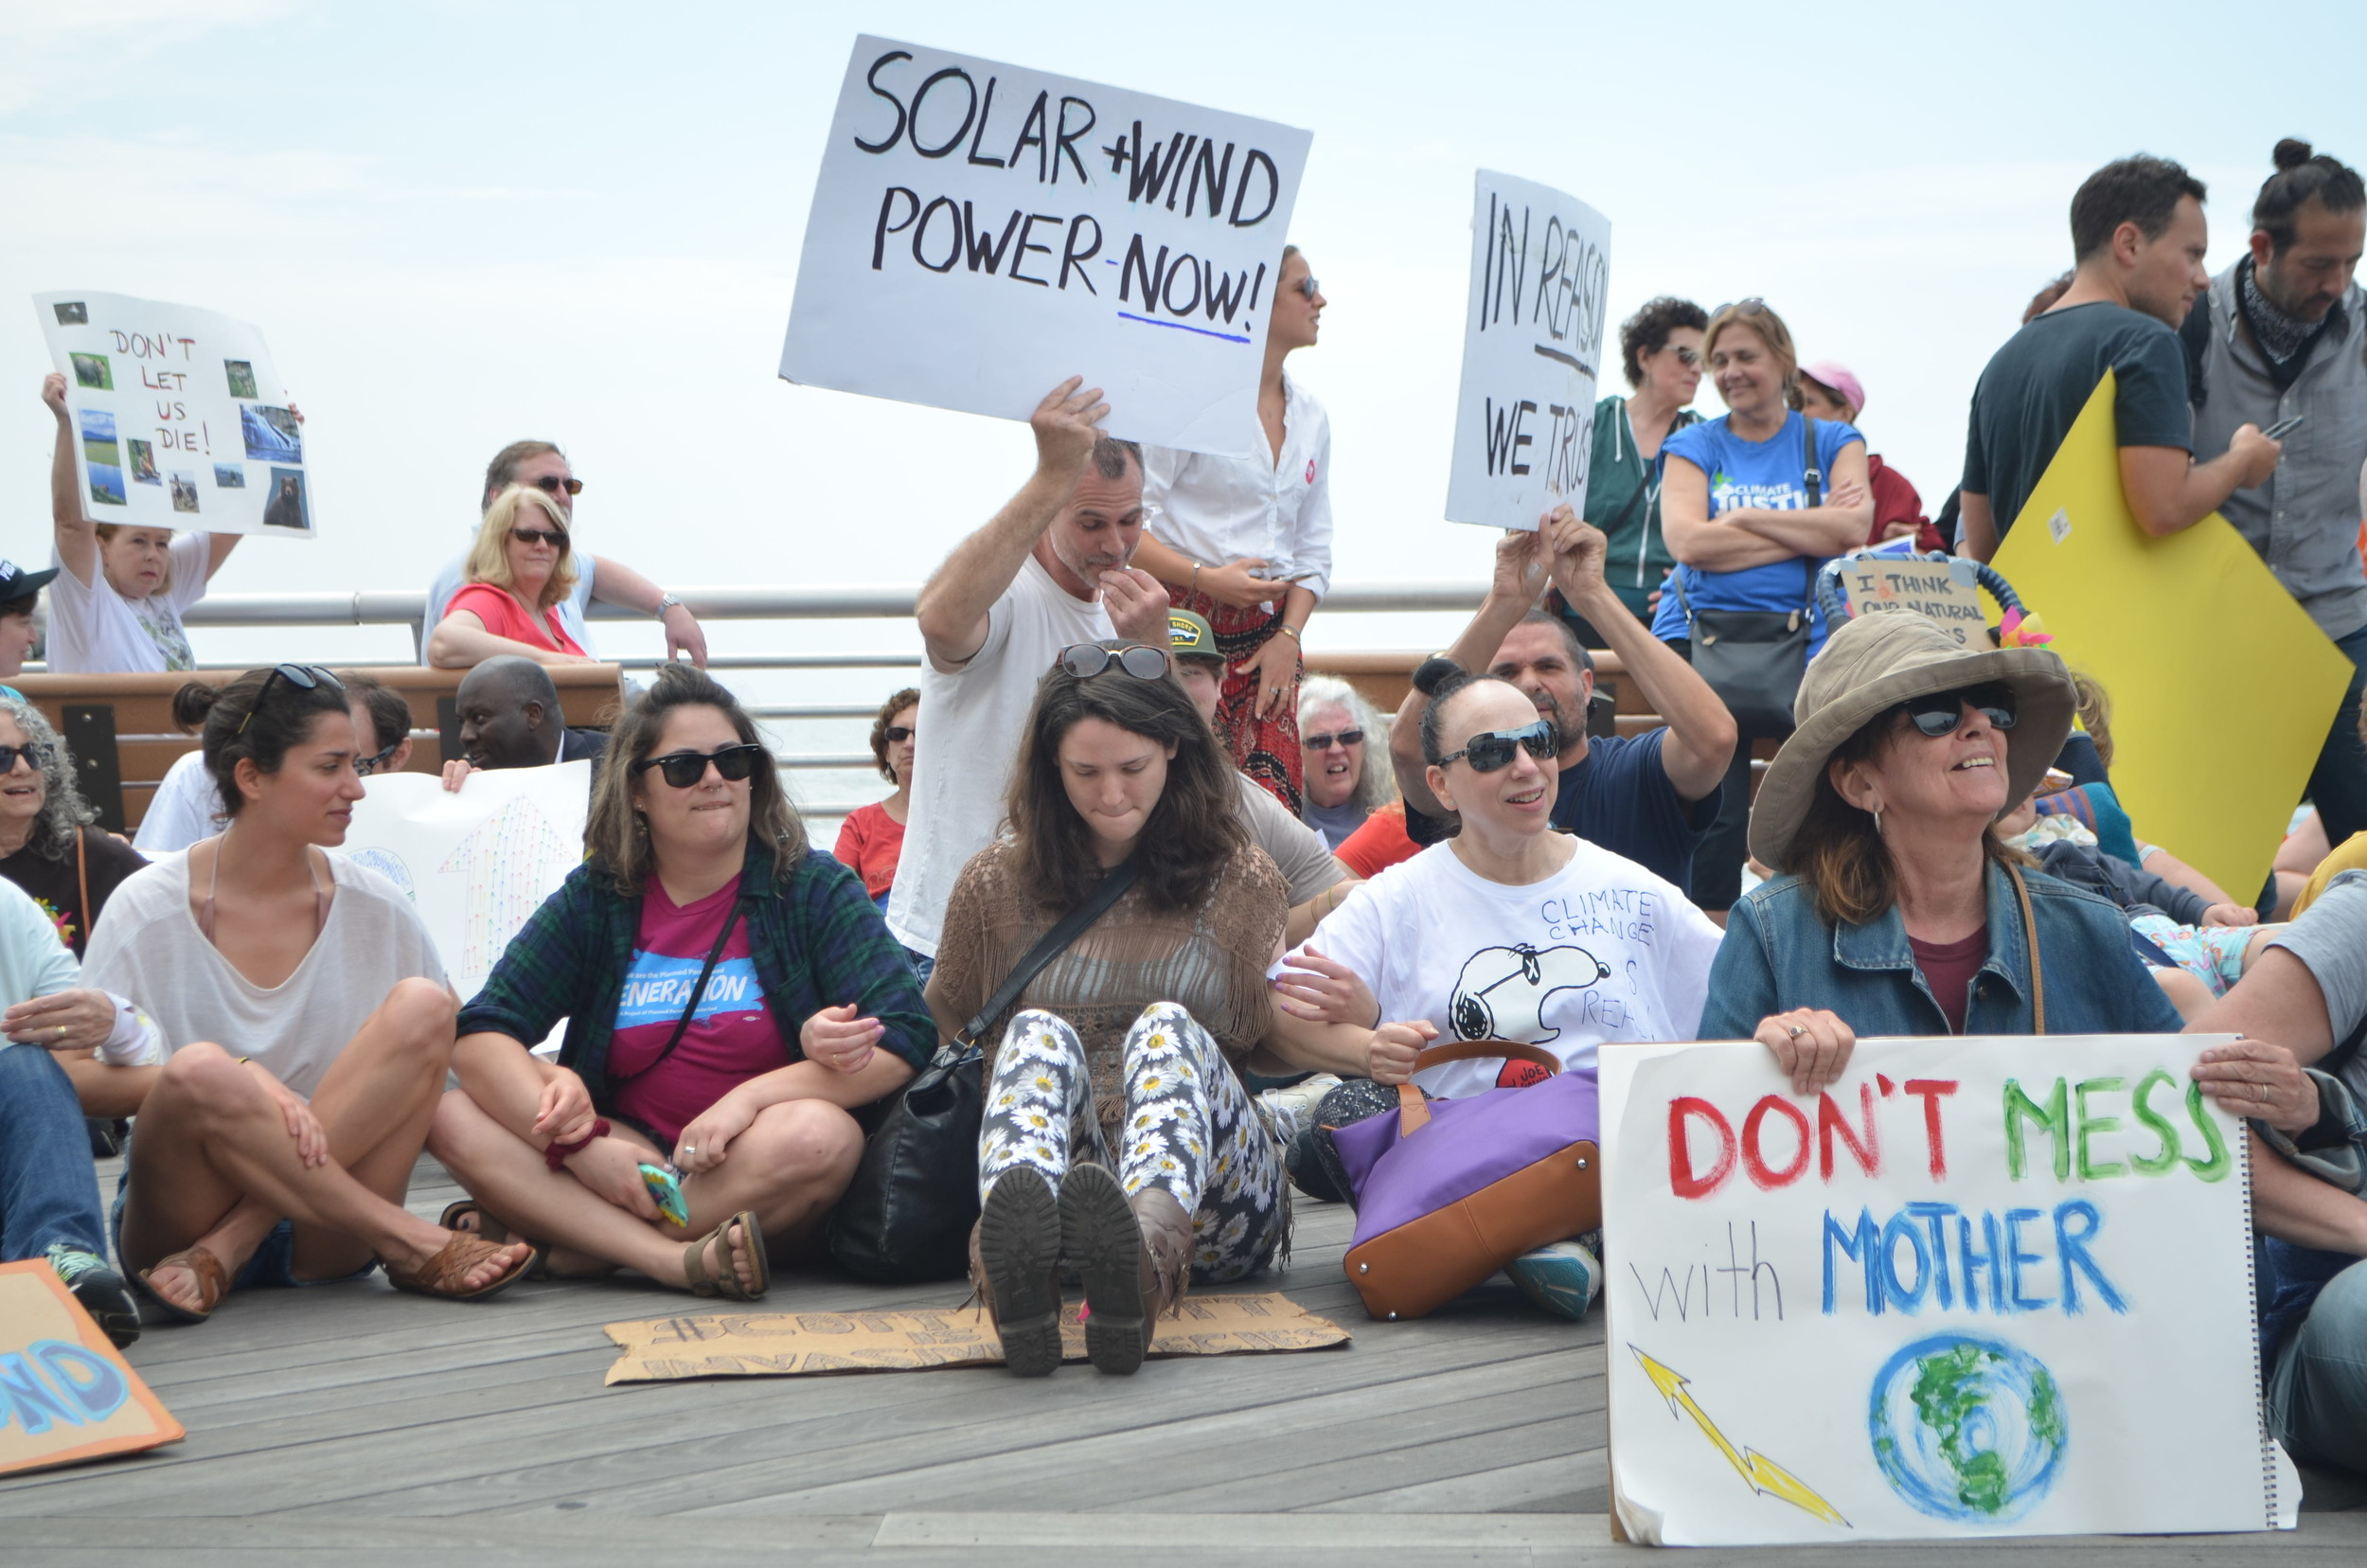 Organizers of the event asked protesters to sit down on the boardwalk, link arms and observe a minute of silence — as did participants in other marches around the country.